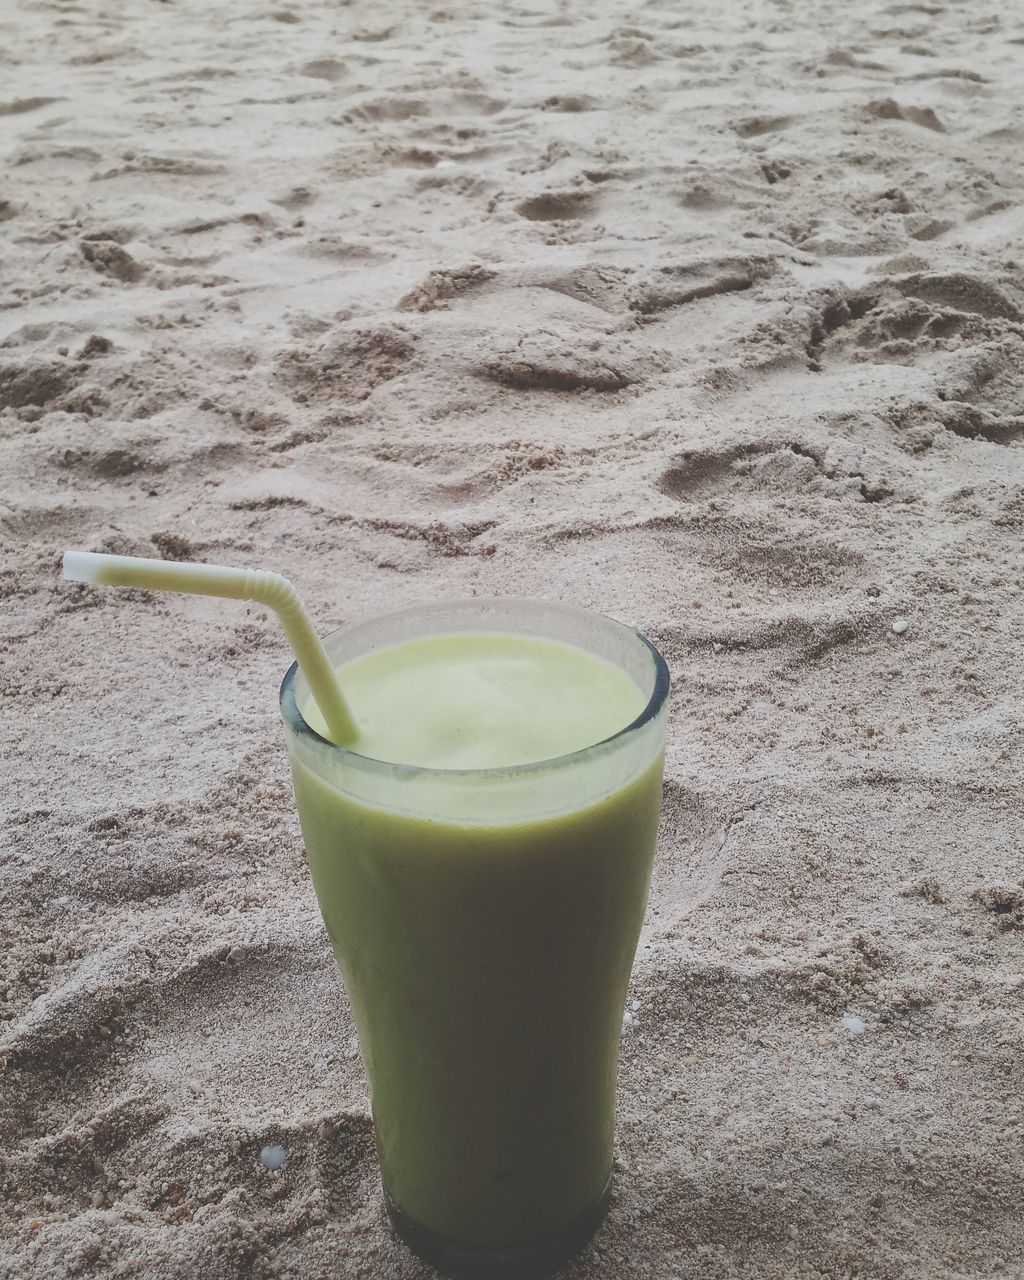 drink, sand, green color, drinking straw, no people, healthy eating, food and drink, drinking glass, refreshment, freshness, day, beach, close-up, smoothie, indoors, food